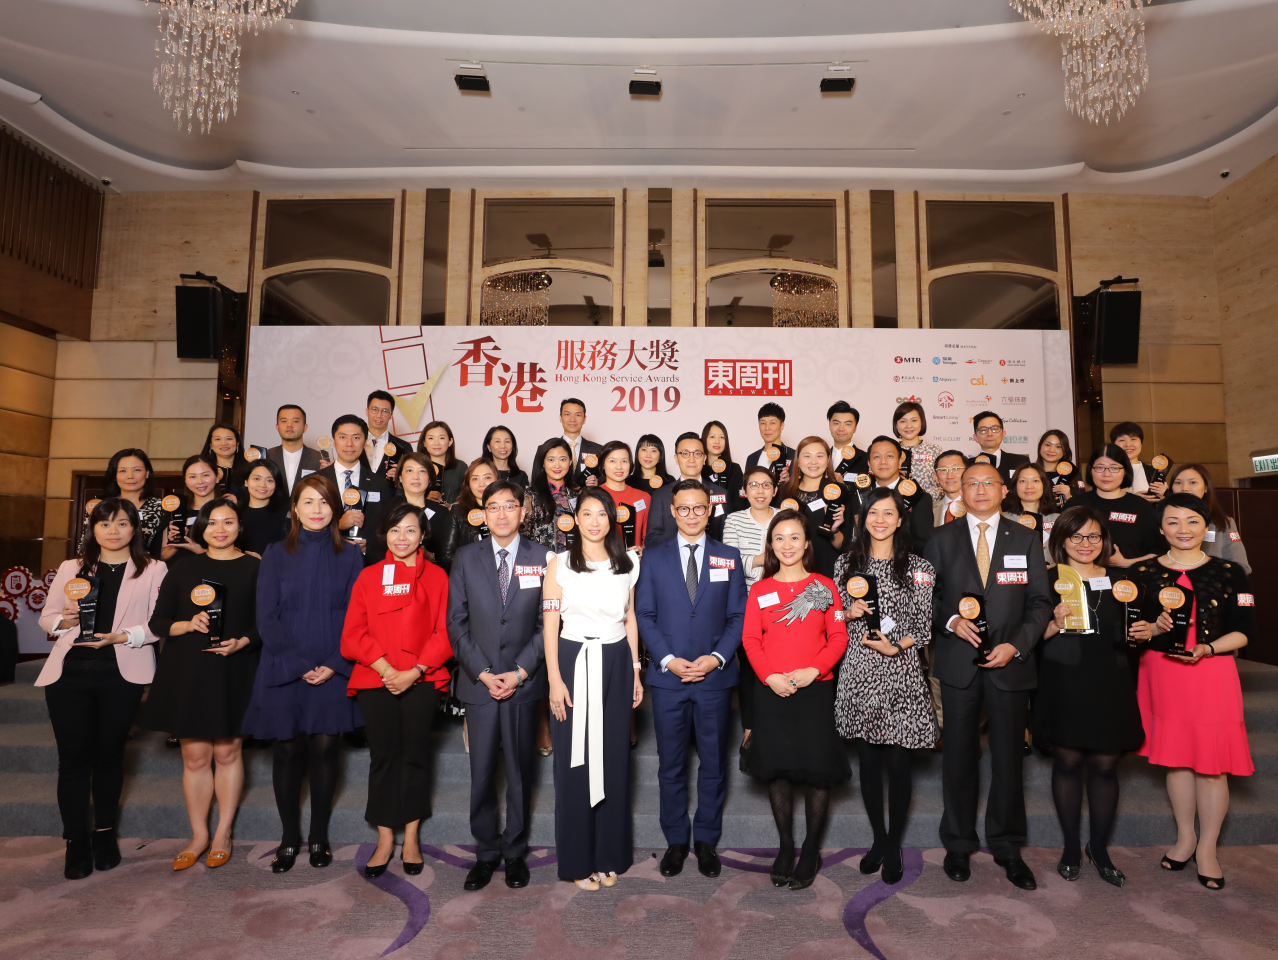 Hong Kong Service Awards 2019